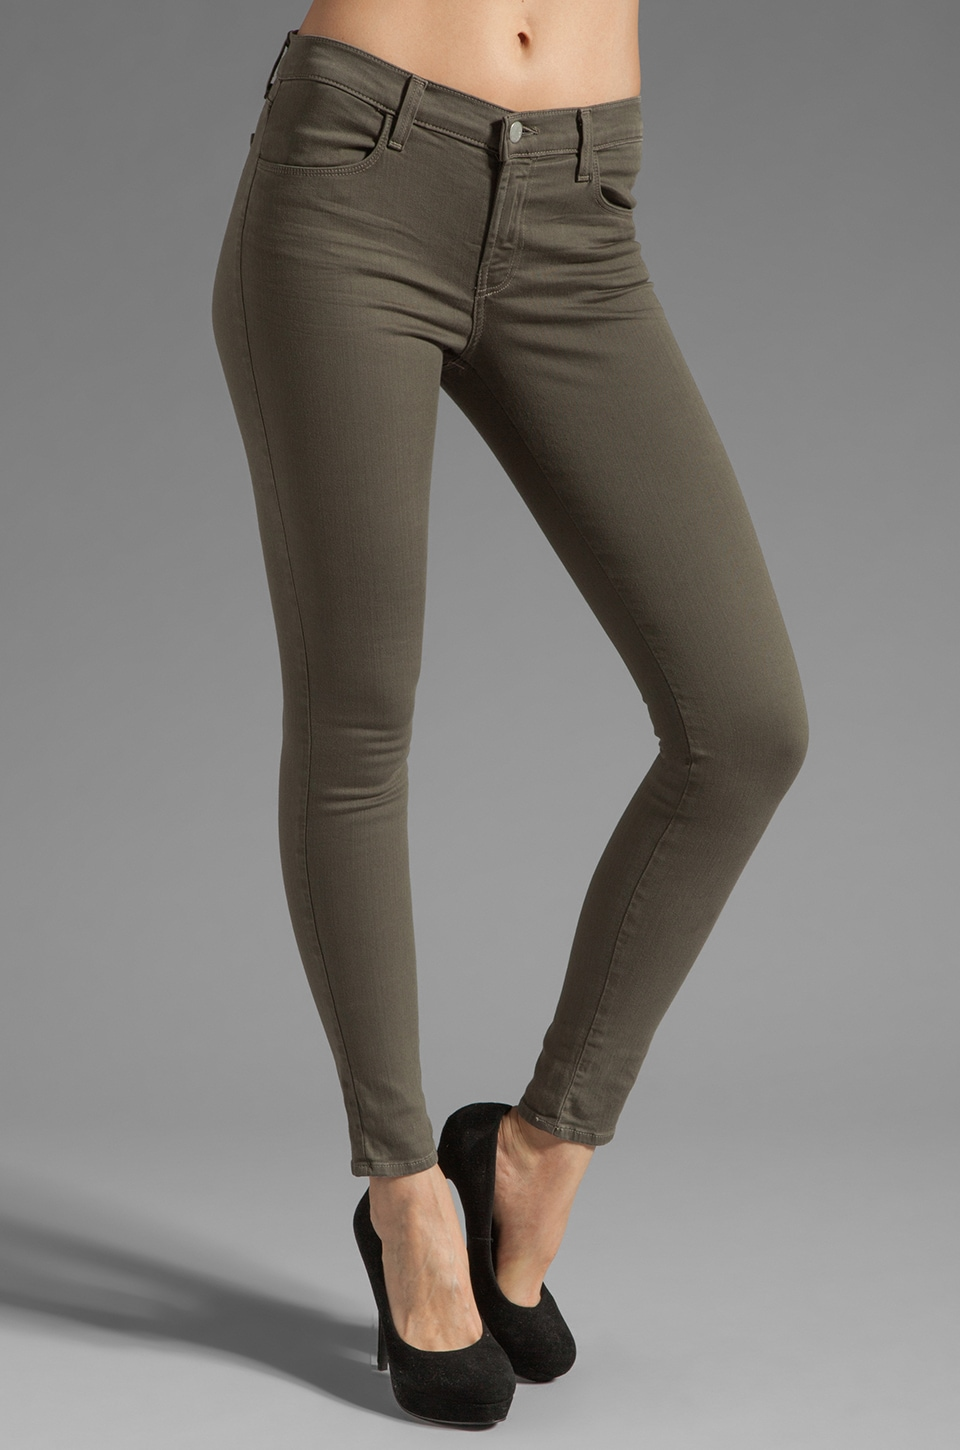 J Brand Super Skinny in Washed Mantis